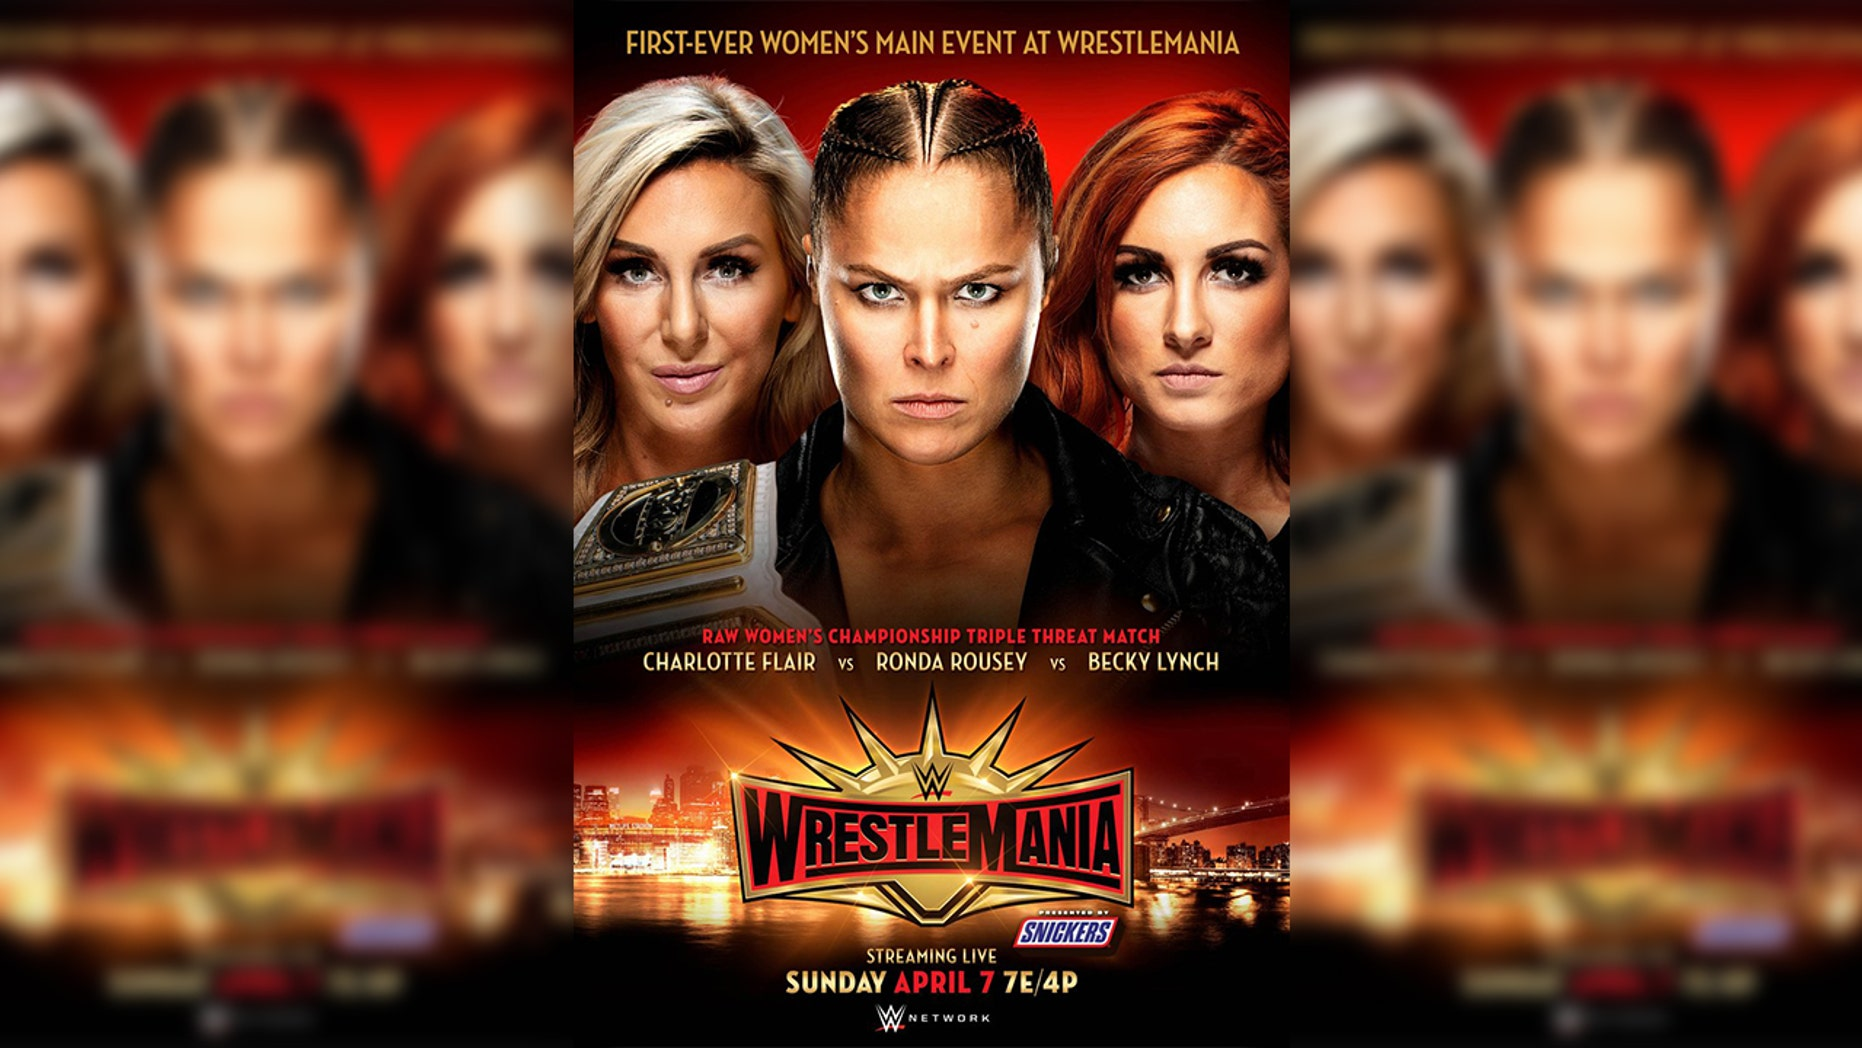 WWE Wrestlemania 35 Poster Reveals First-Ever Women's Main Event